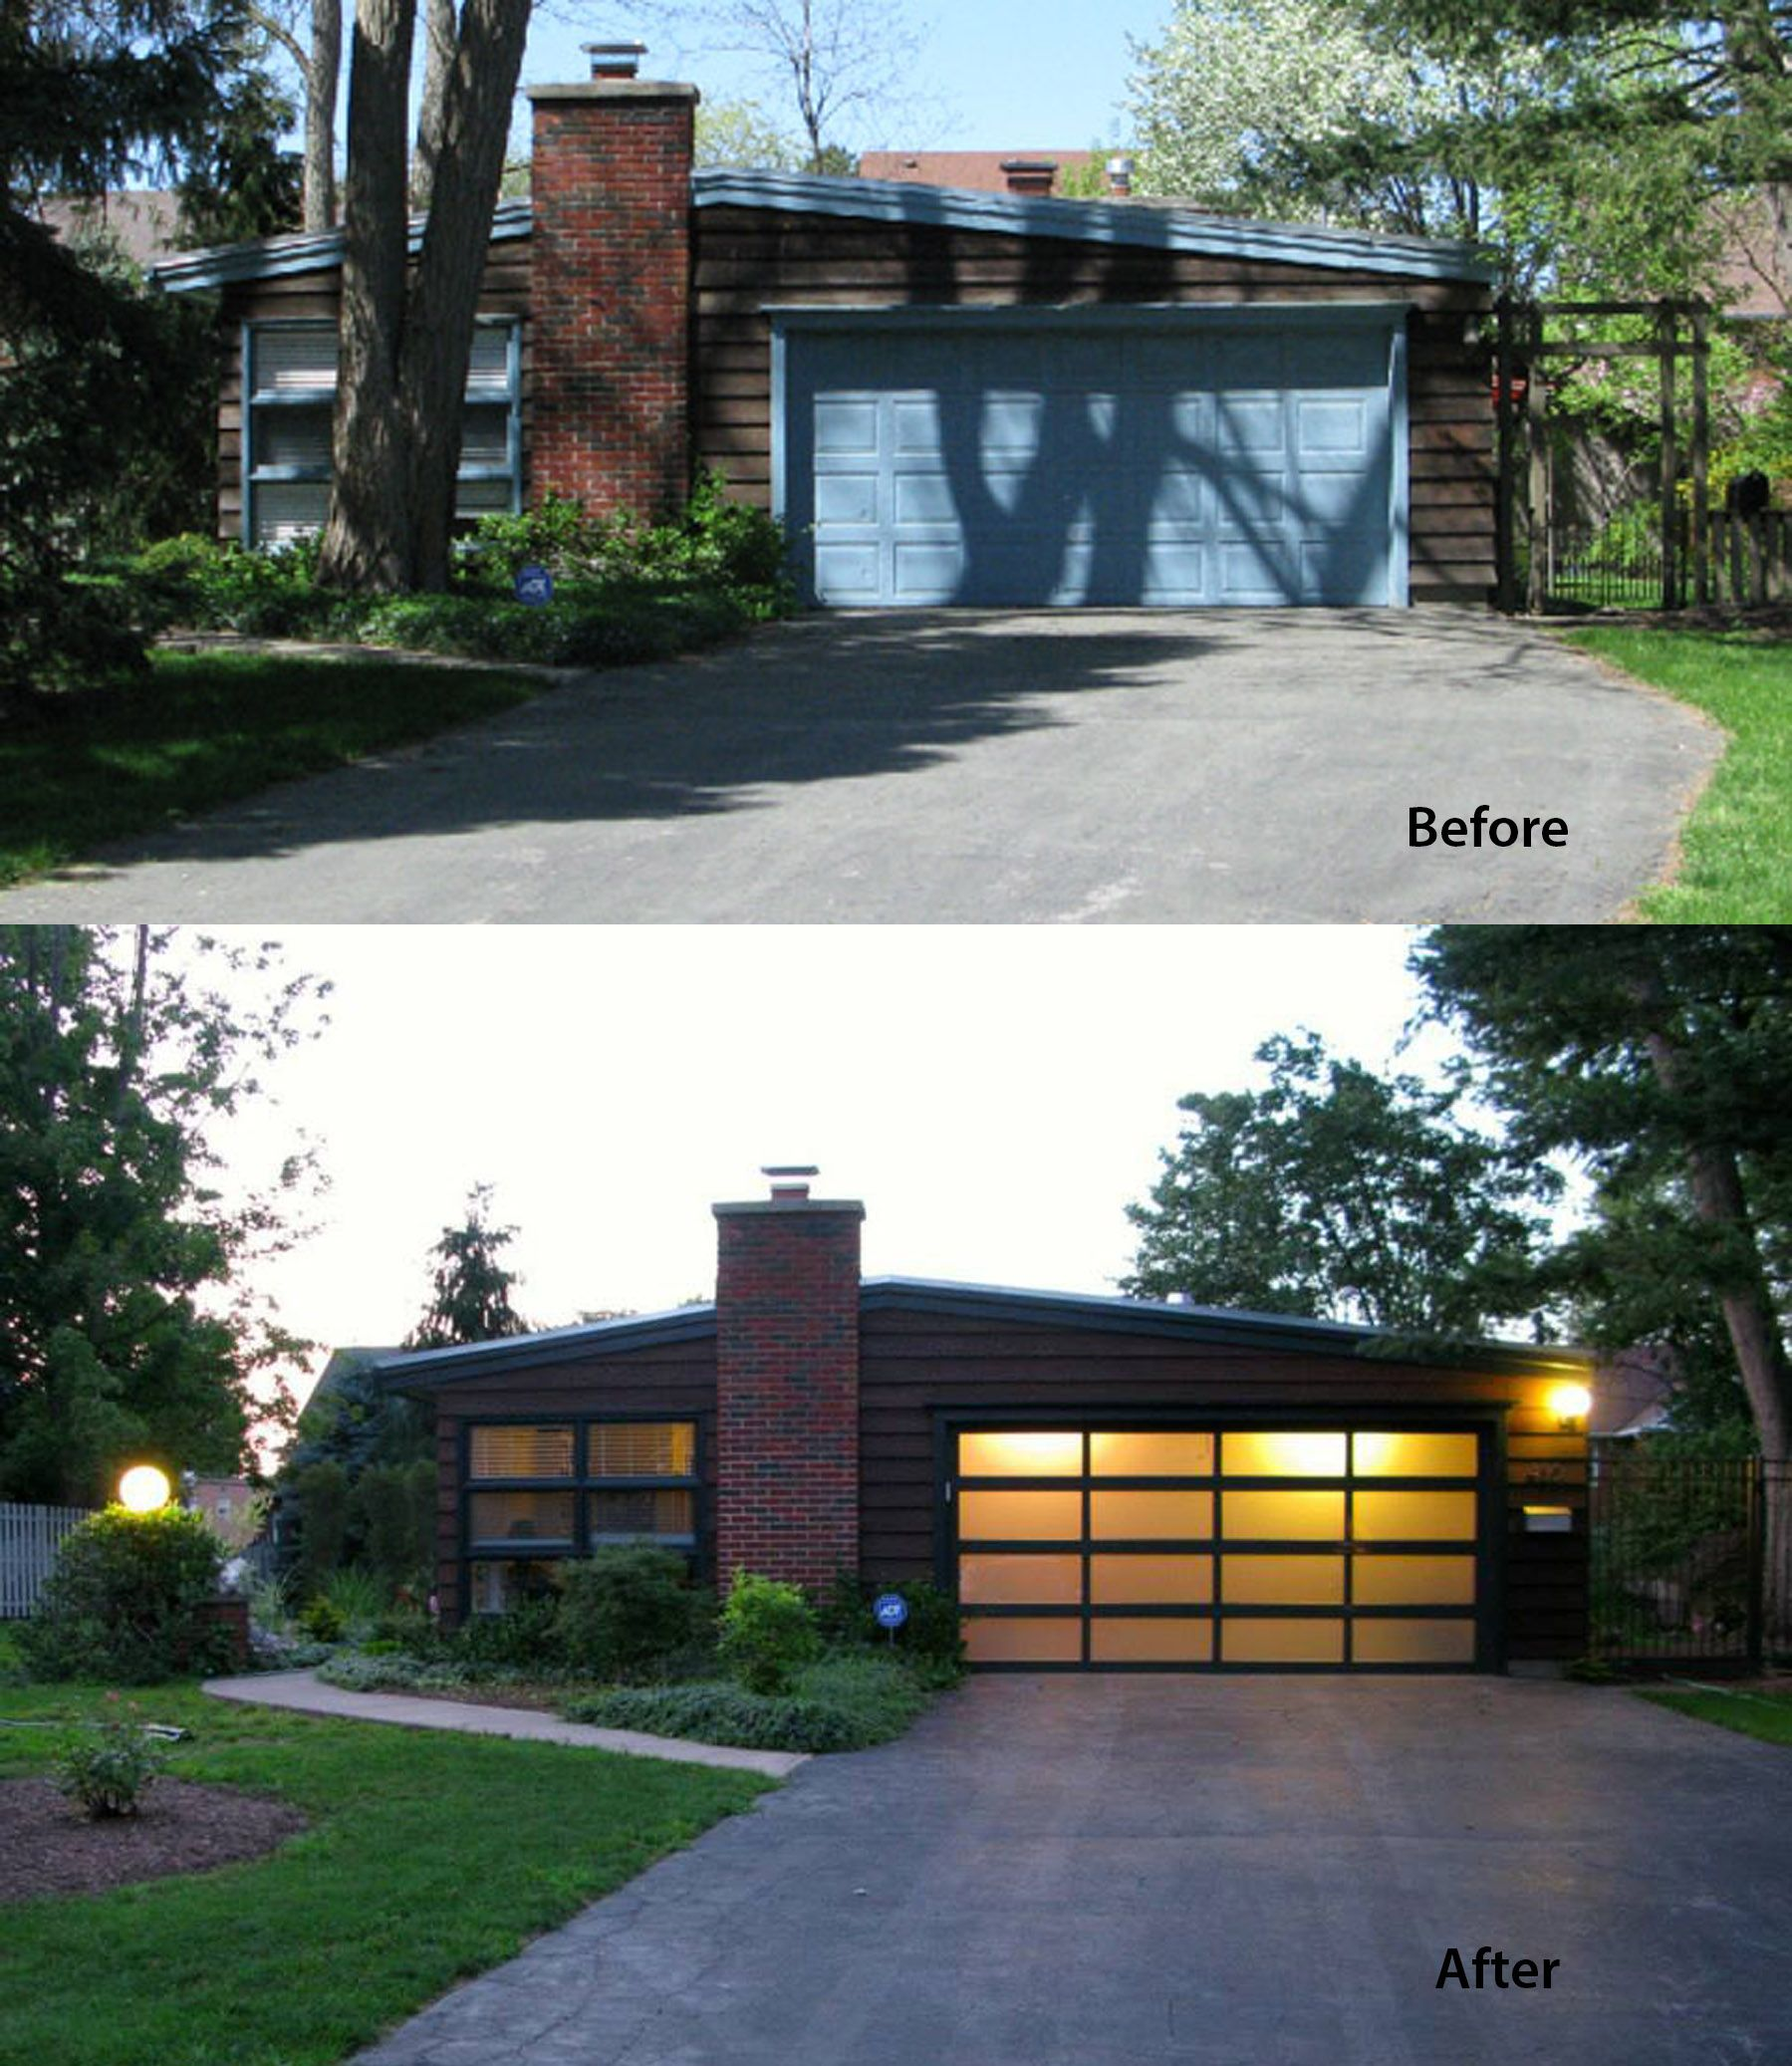 Top 5 Modern Garage Designs: Completely Modernize Your Home With A New Glass Garage